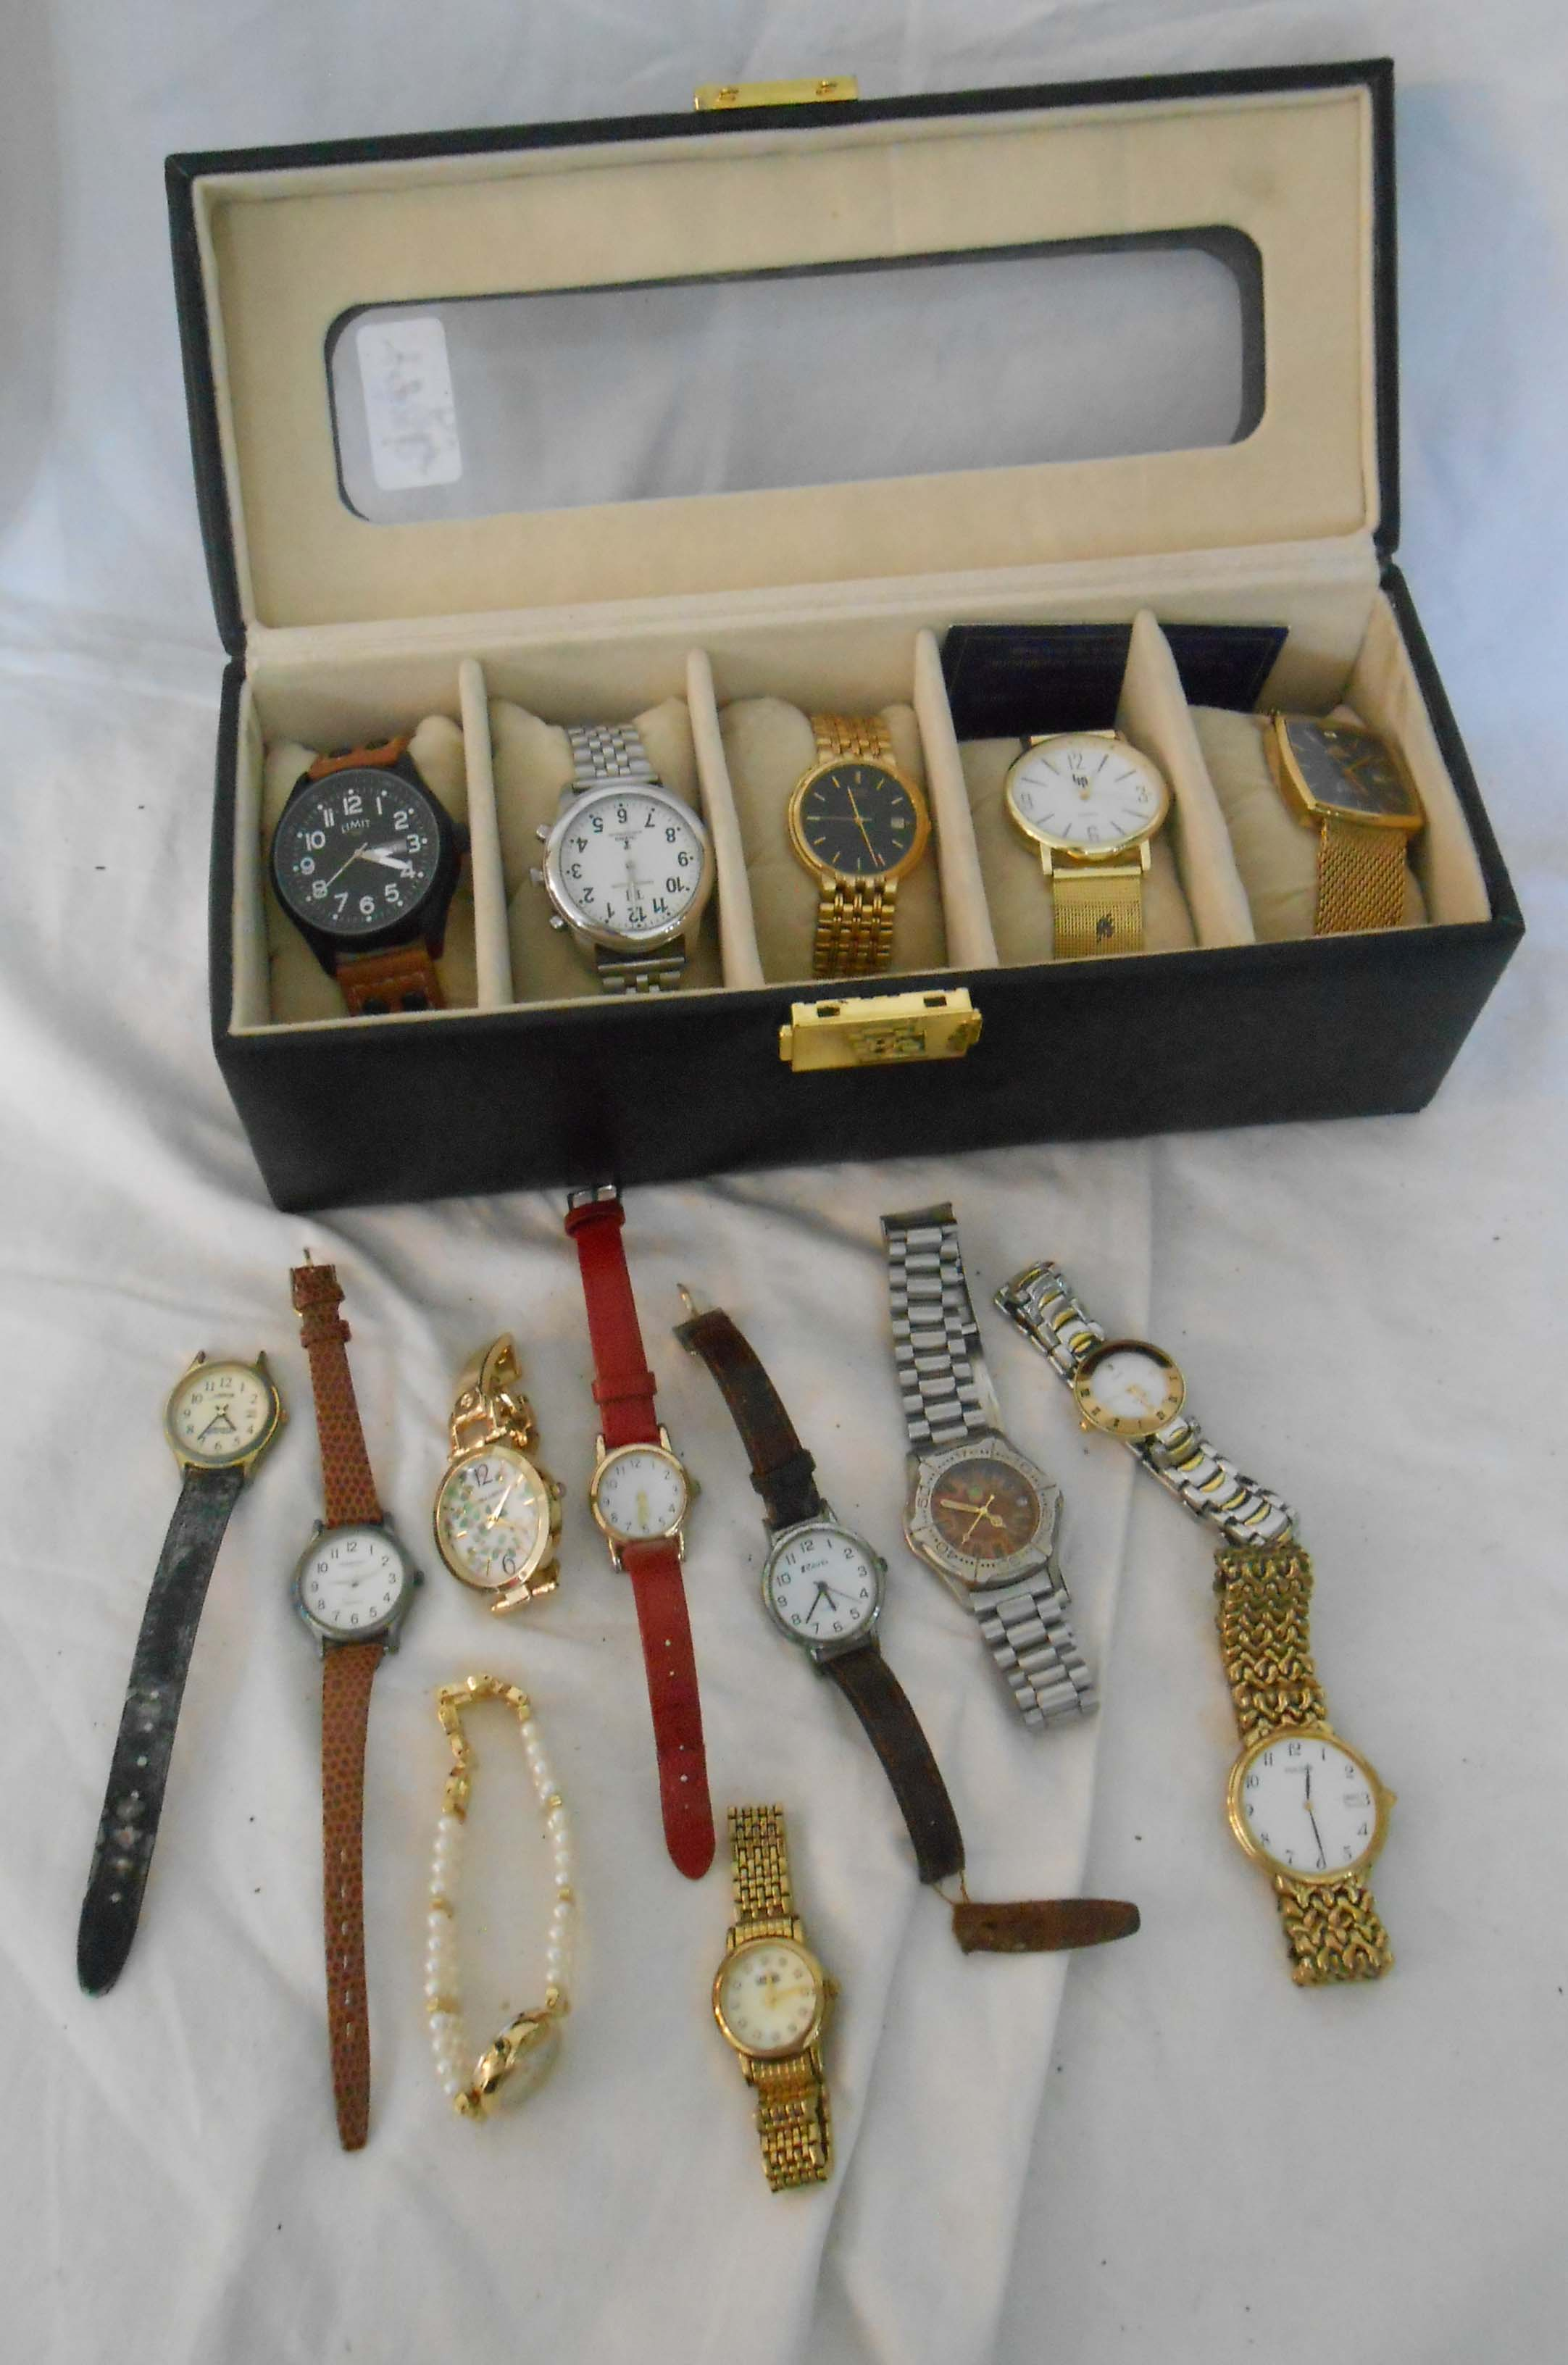 A upholstered case containing a collection of assorted wristwatches